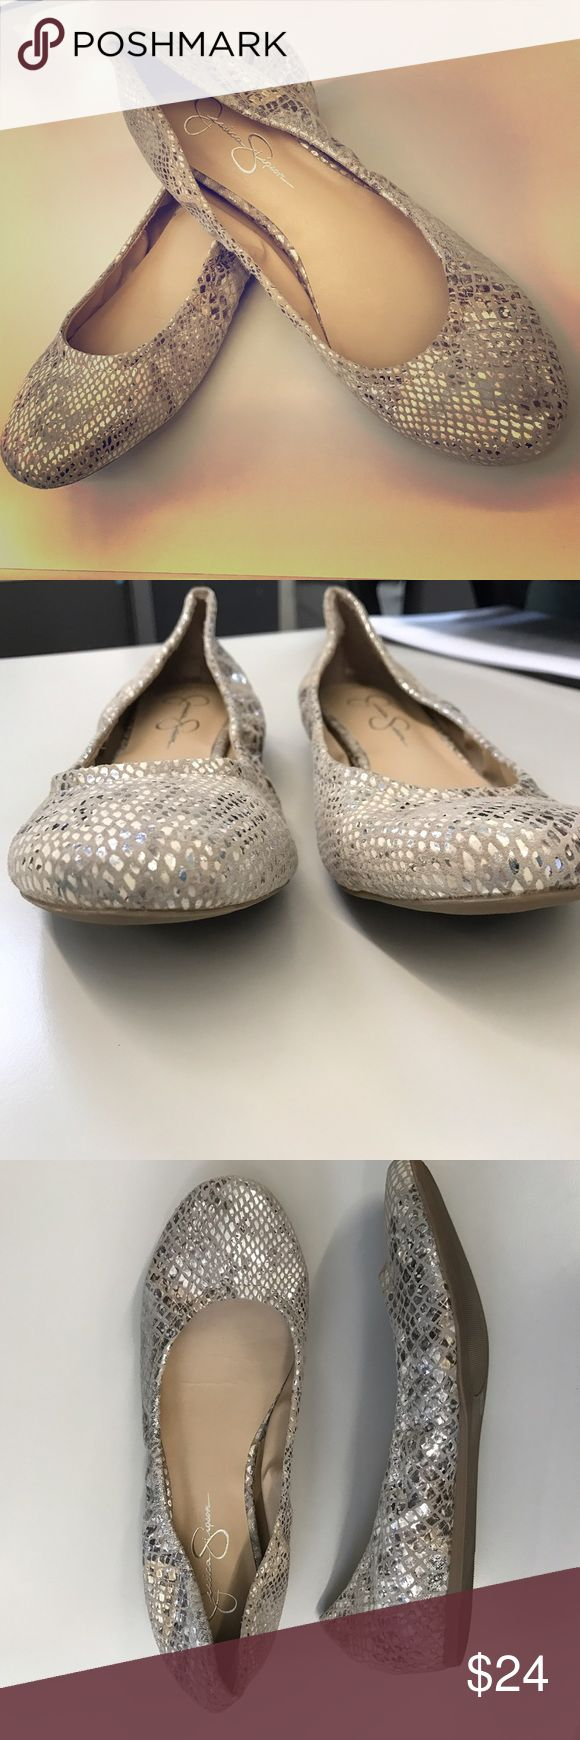 Jessica Simpson Metallic Ballet Flats Never worn / Jessica Simpson Ballet Flats / Silver Metallic Snake Skin / perfect with leggings or skinny jeans / No Trades / Offers Welcome! Jessica Simpson Shoes Flats & Loafers